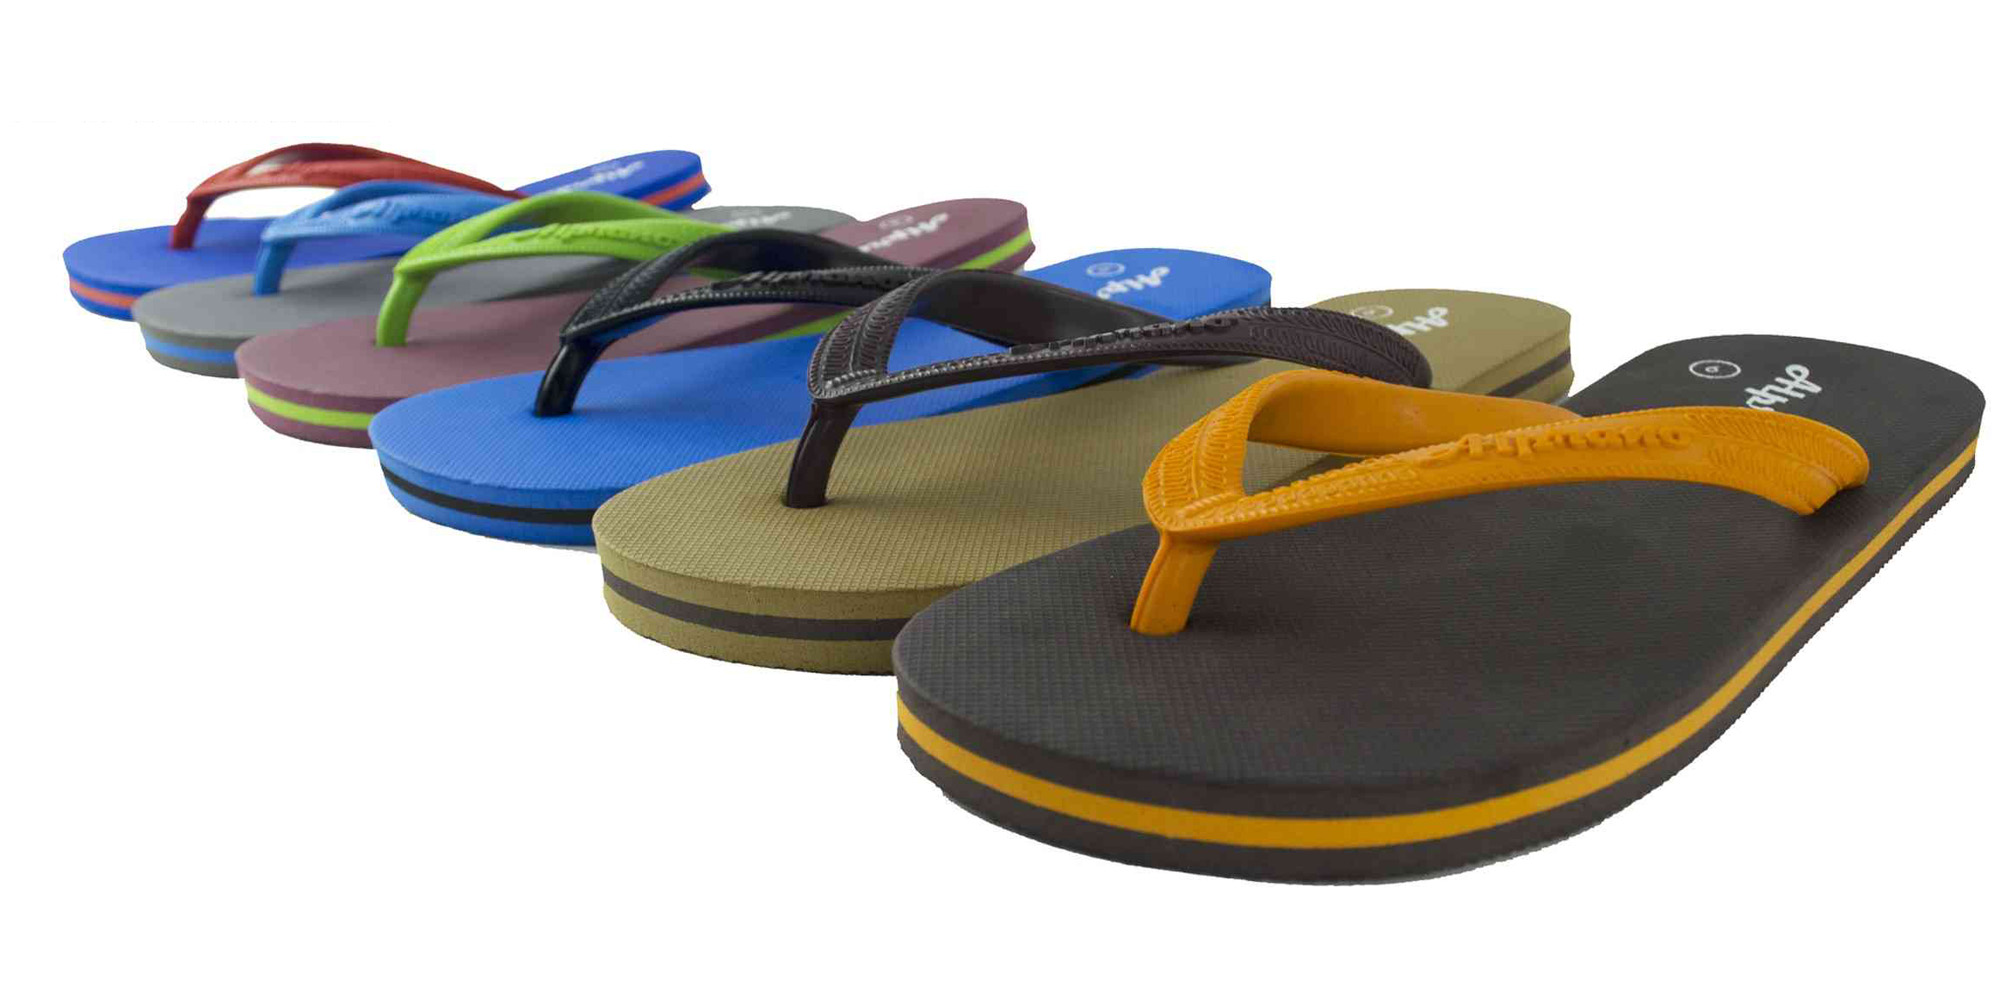 JN-APL06 (UK6) Alprano Slipper